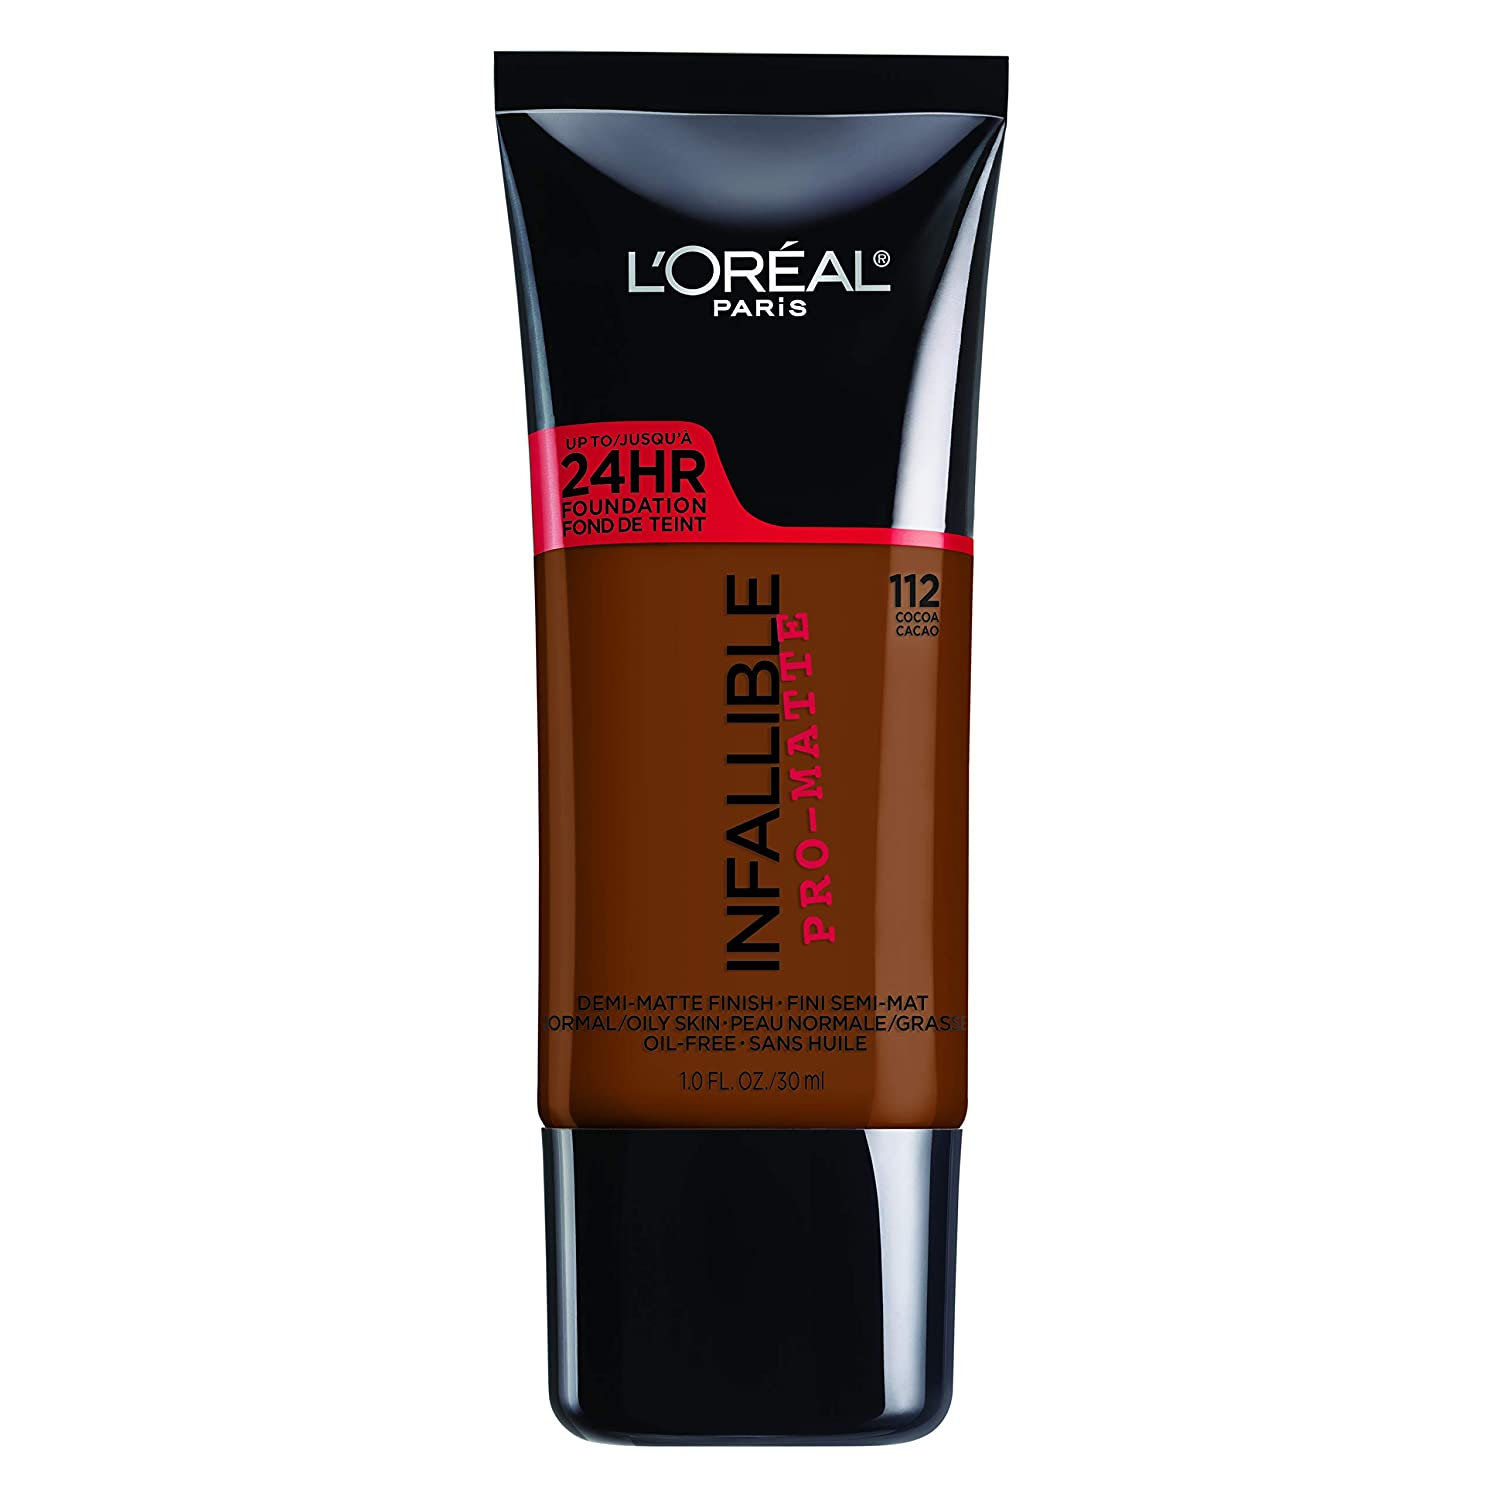 L'Oreal Paris Infallible Pro-Matte Foundation, Cocoa [112] 1 oz